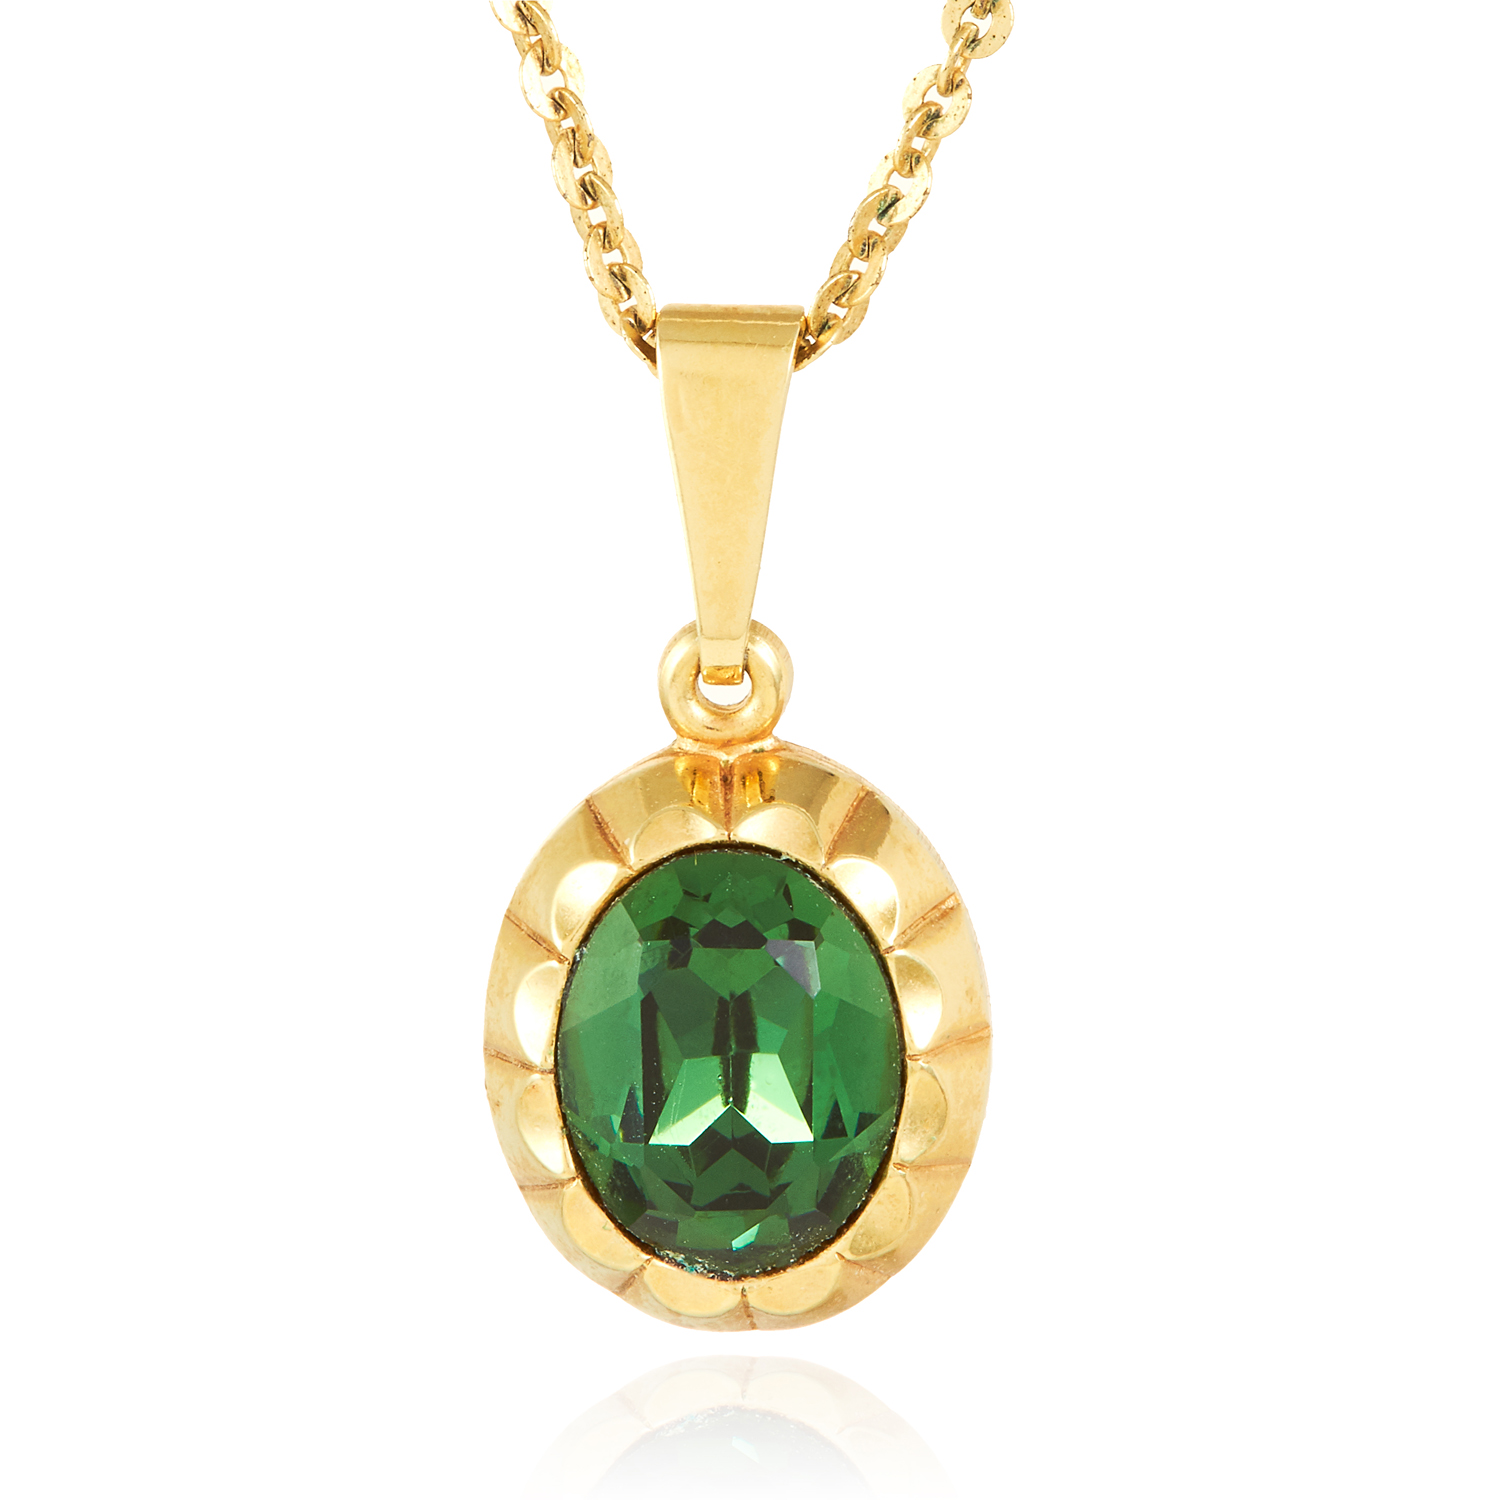 A GREENSTONE PENDANT in yellow gold, set with an oval cut green stone, 2.5cm, 3.5g.